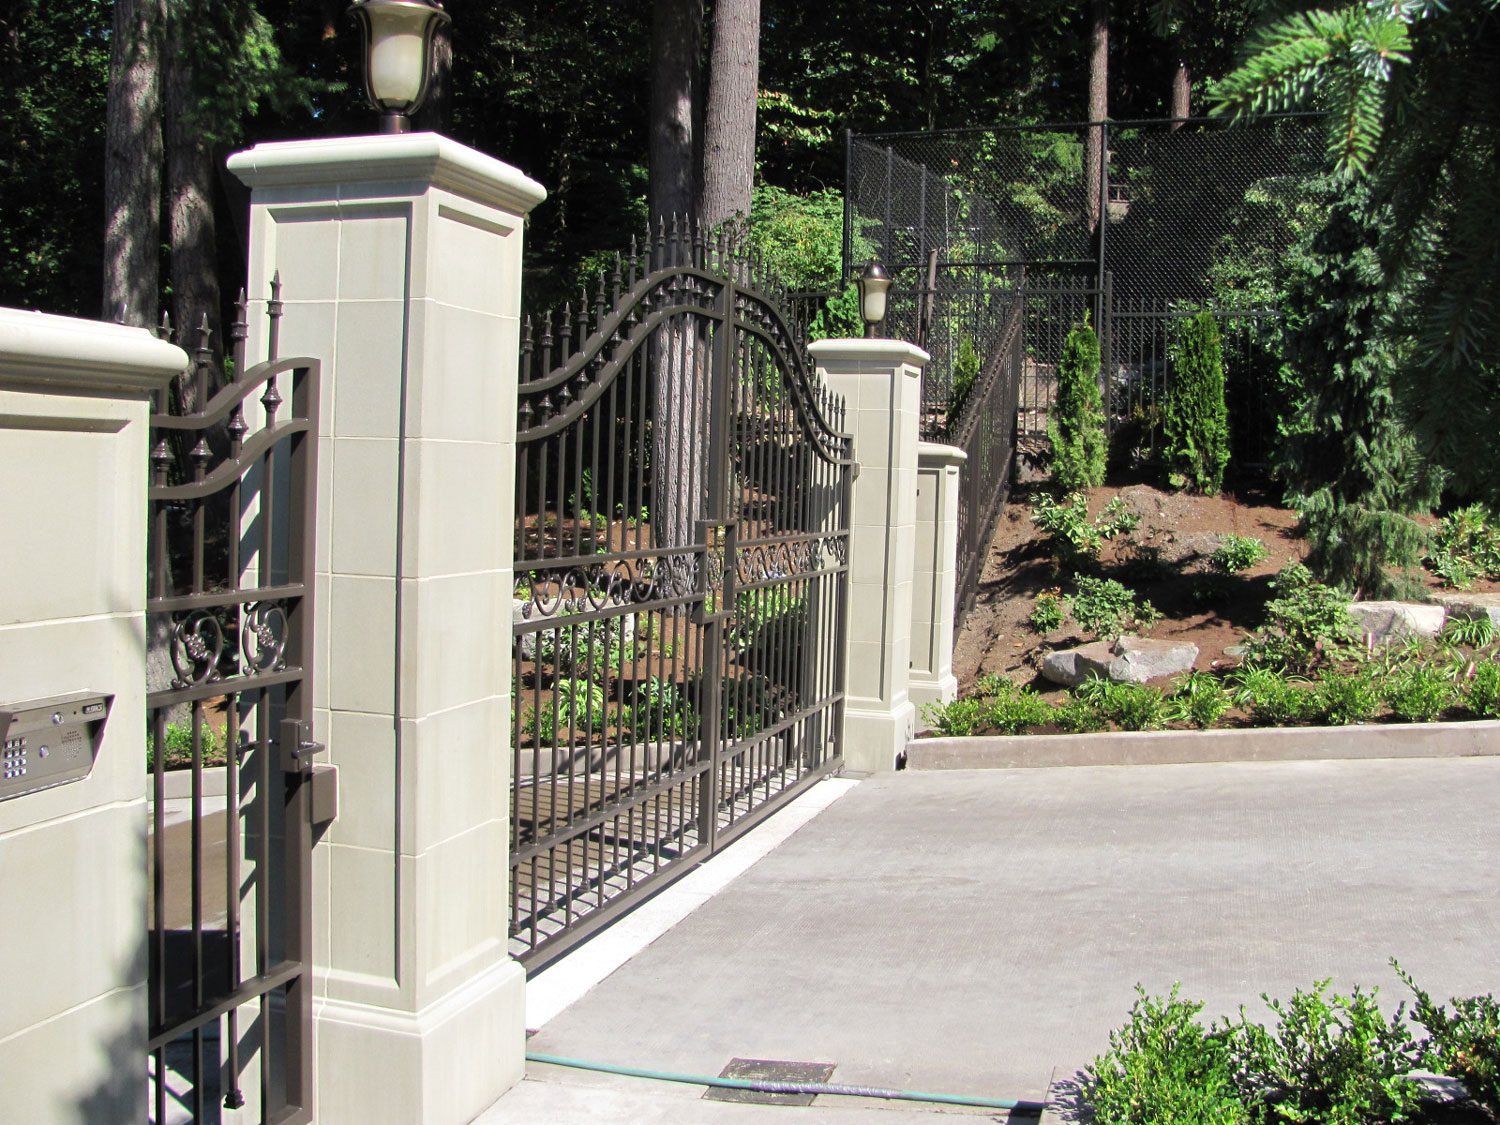 Automatic Gate and Fence - Seattle, WA